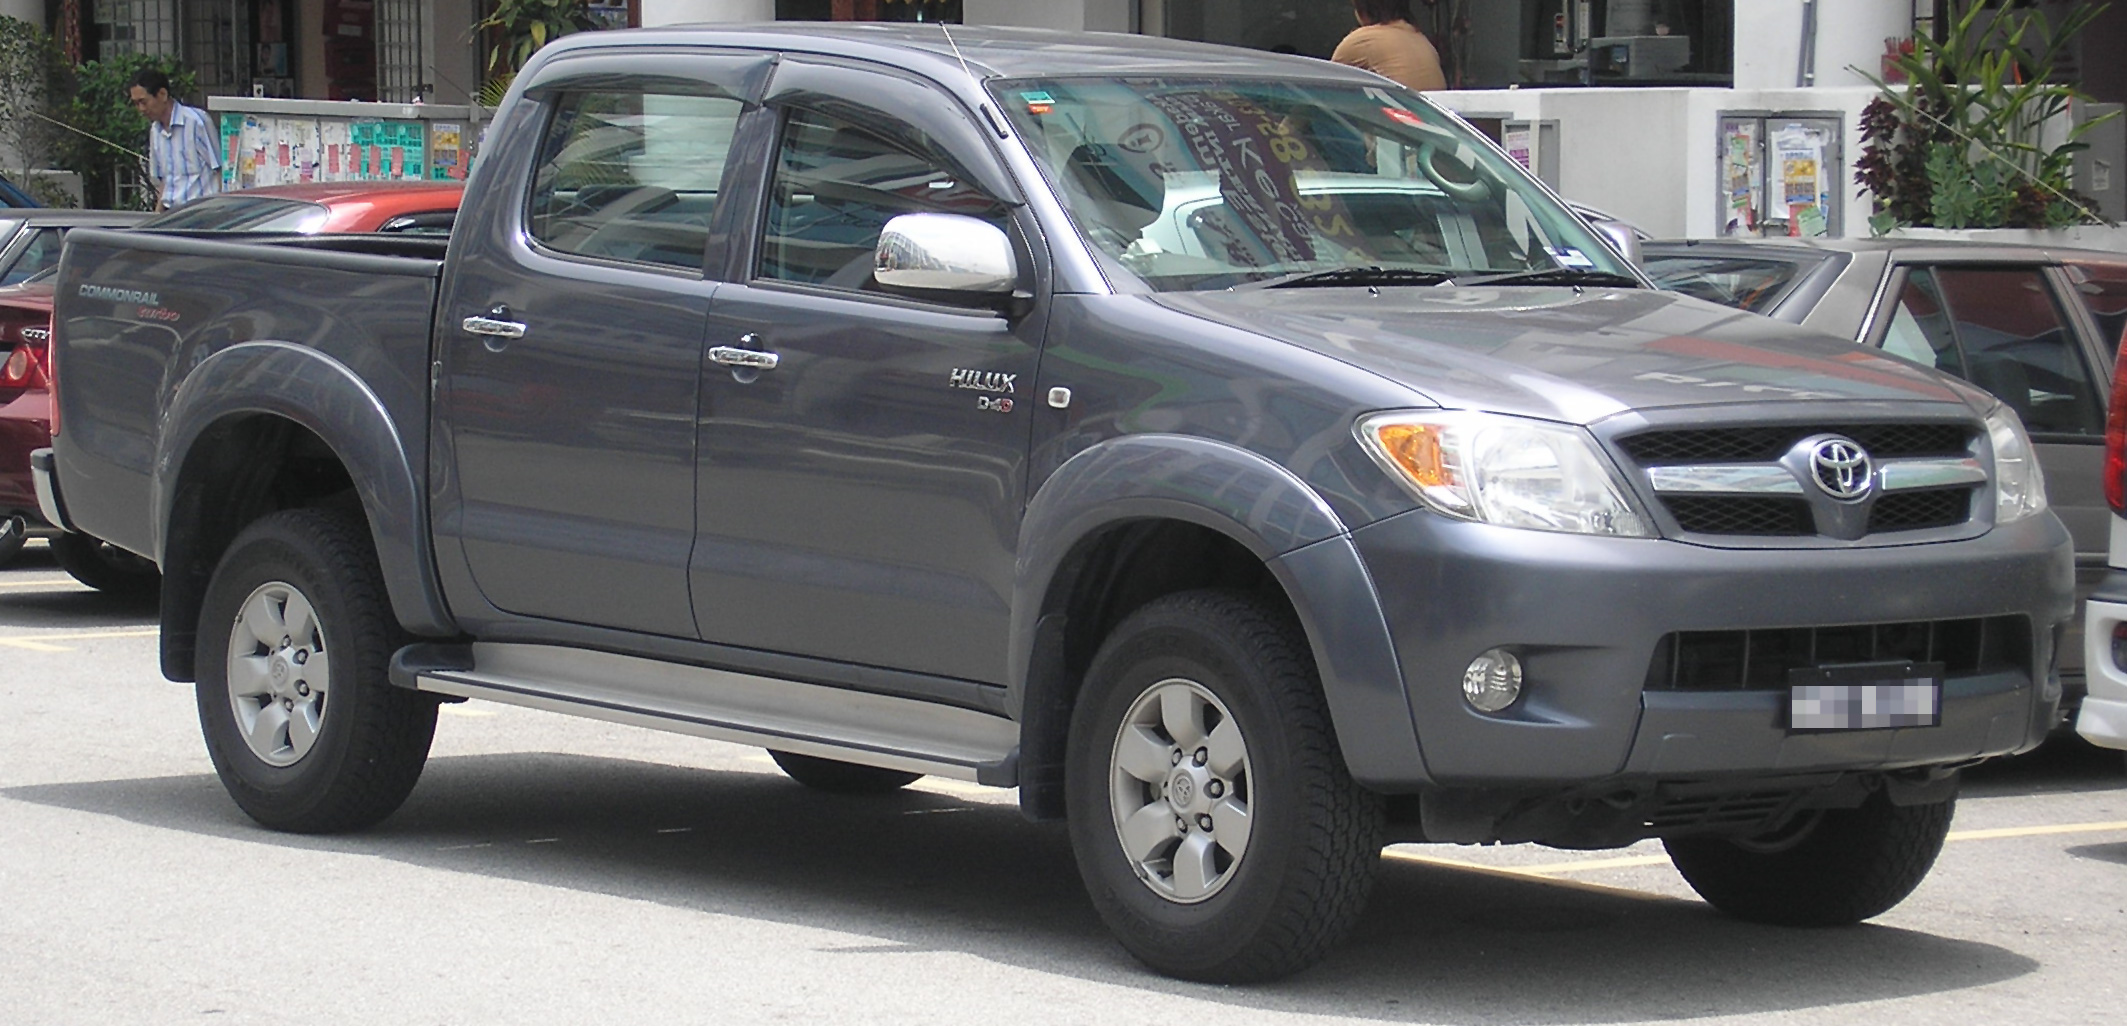 File:Toyota Hilux (eighth generation) (front), Serdang.jpg ...